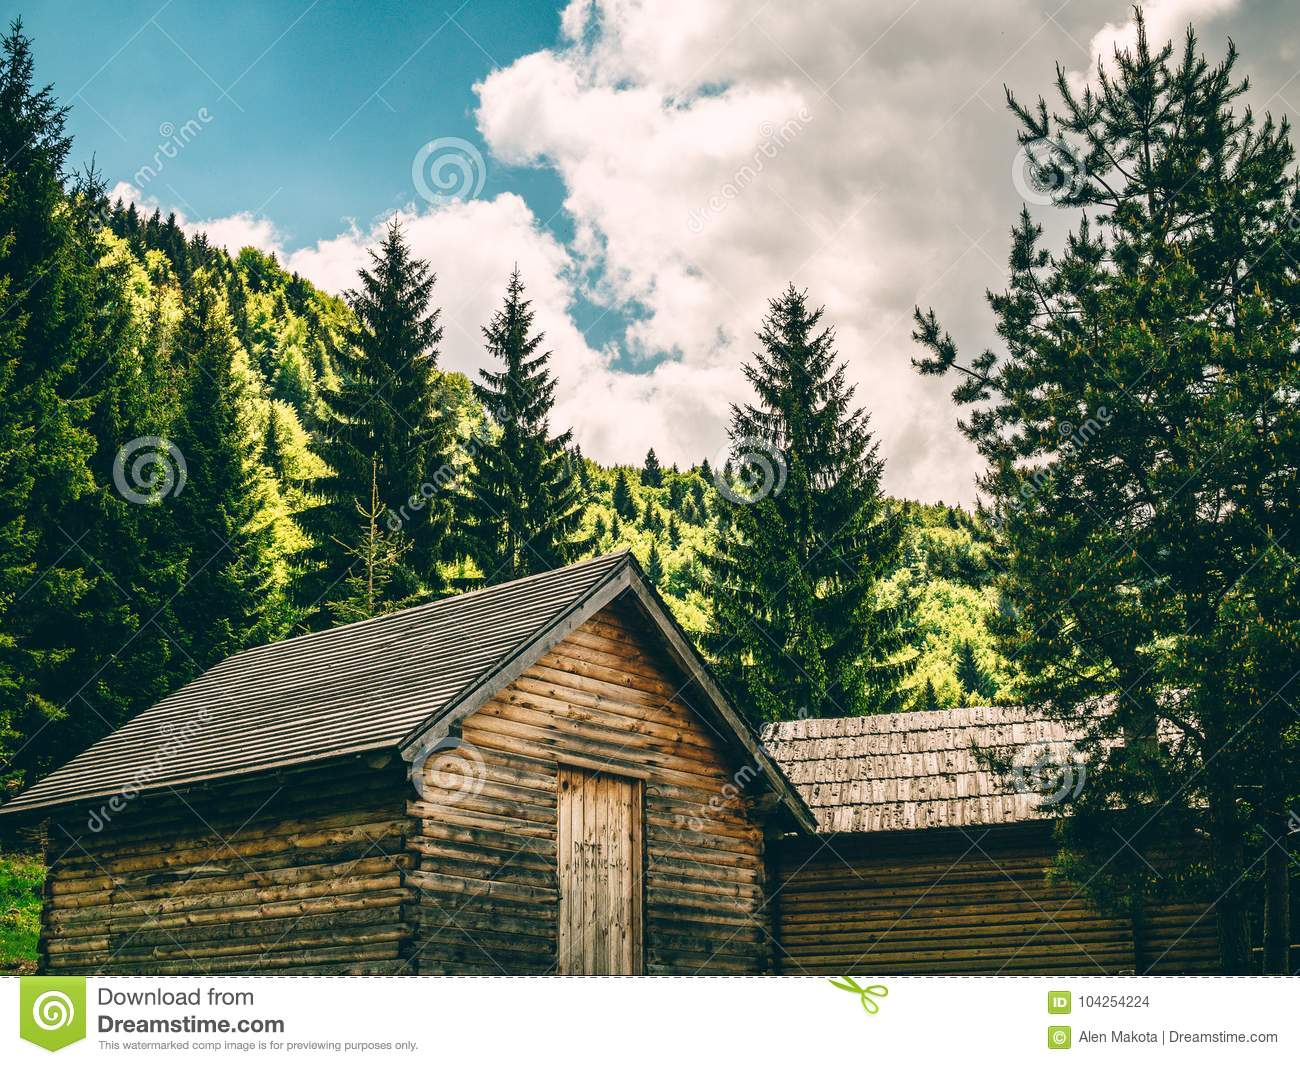 Vintage Cabins In The Woods Stock Photo Image Of House Sitgreaves